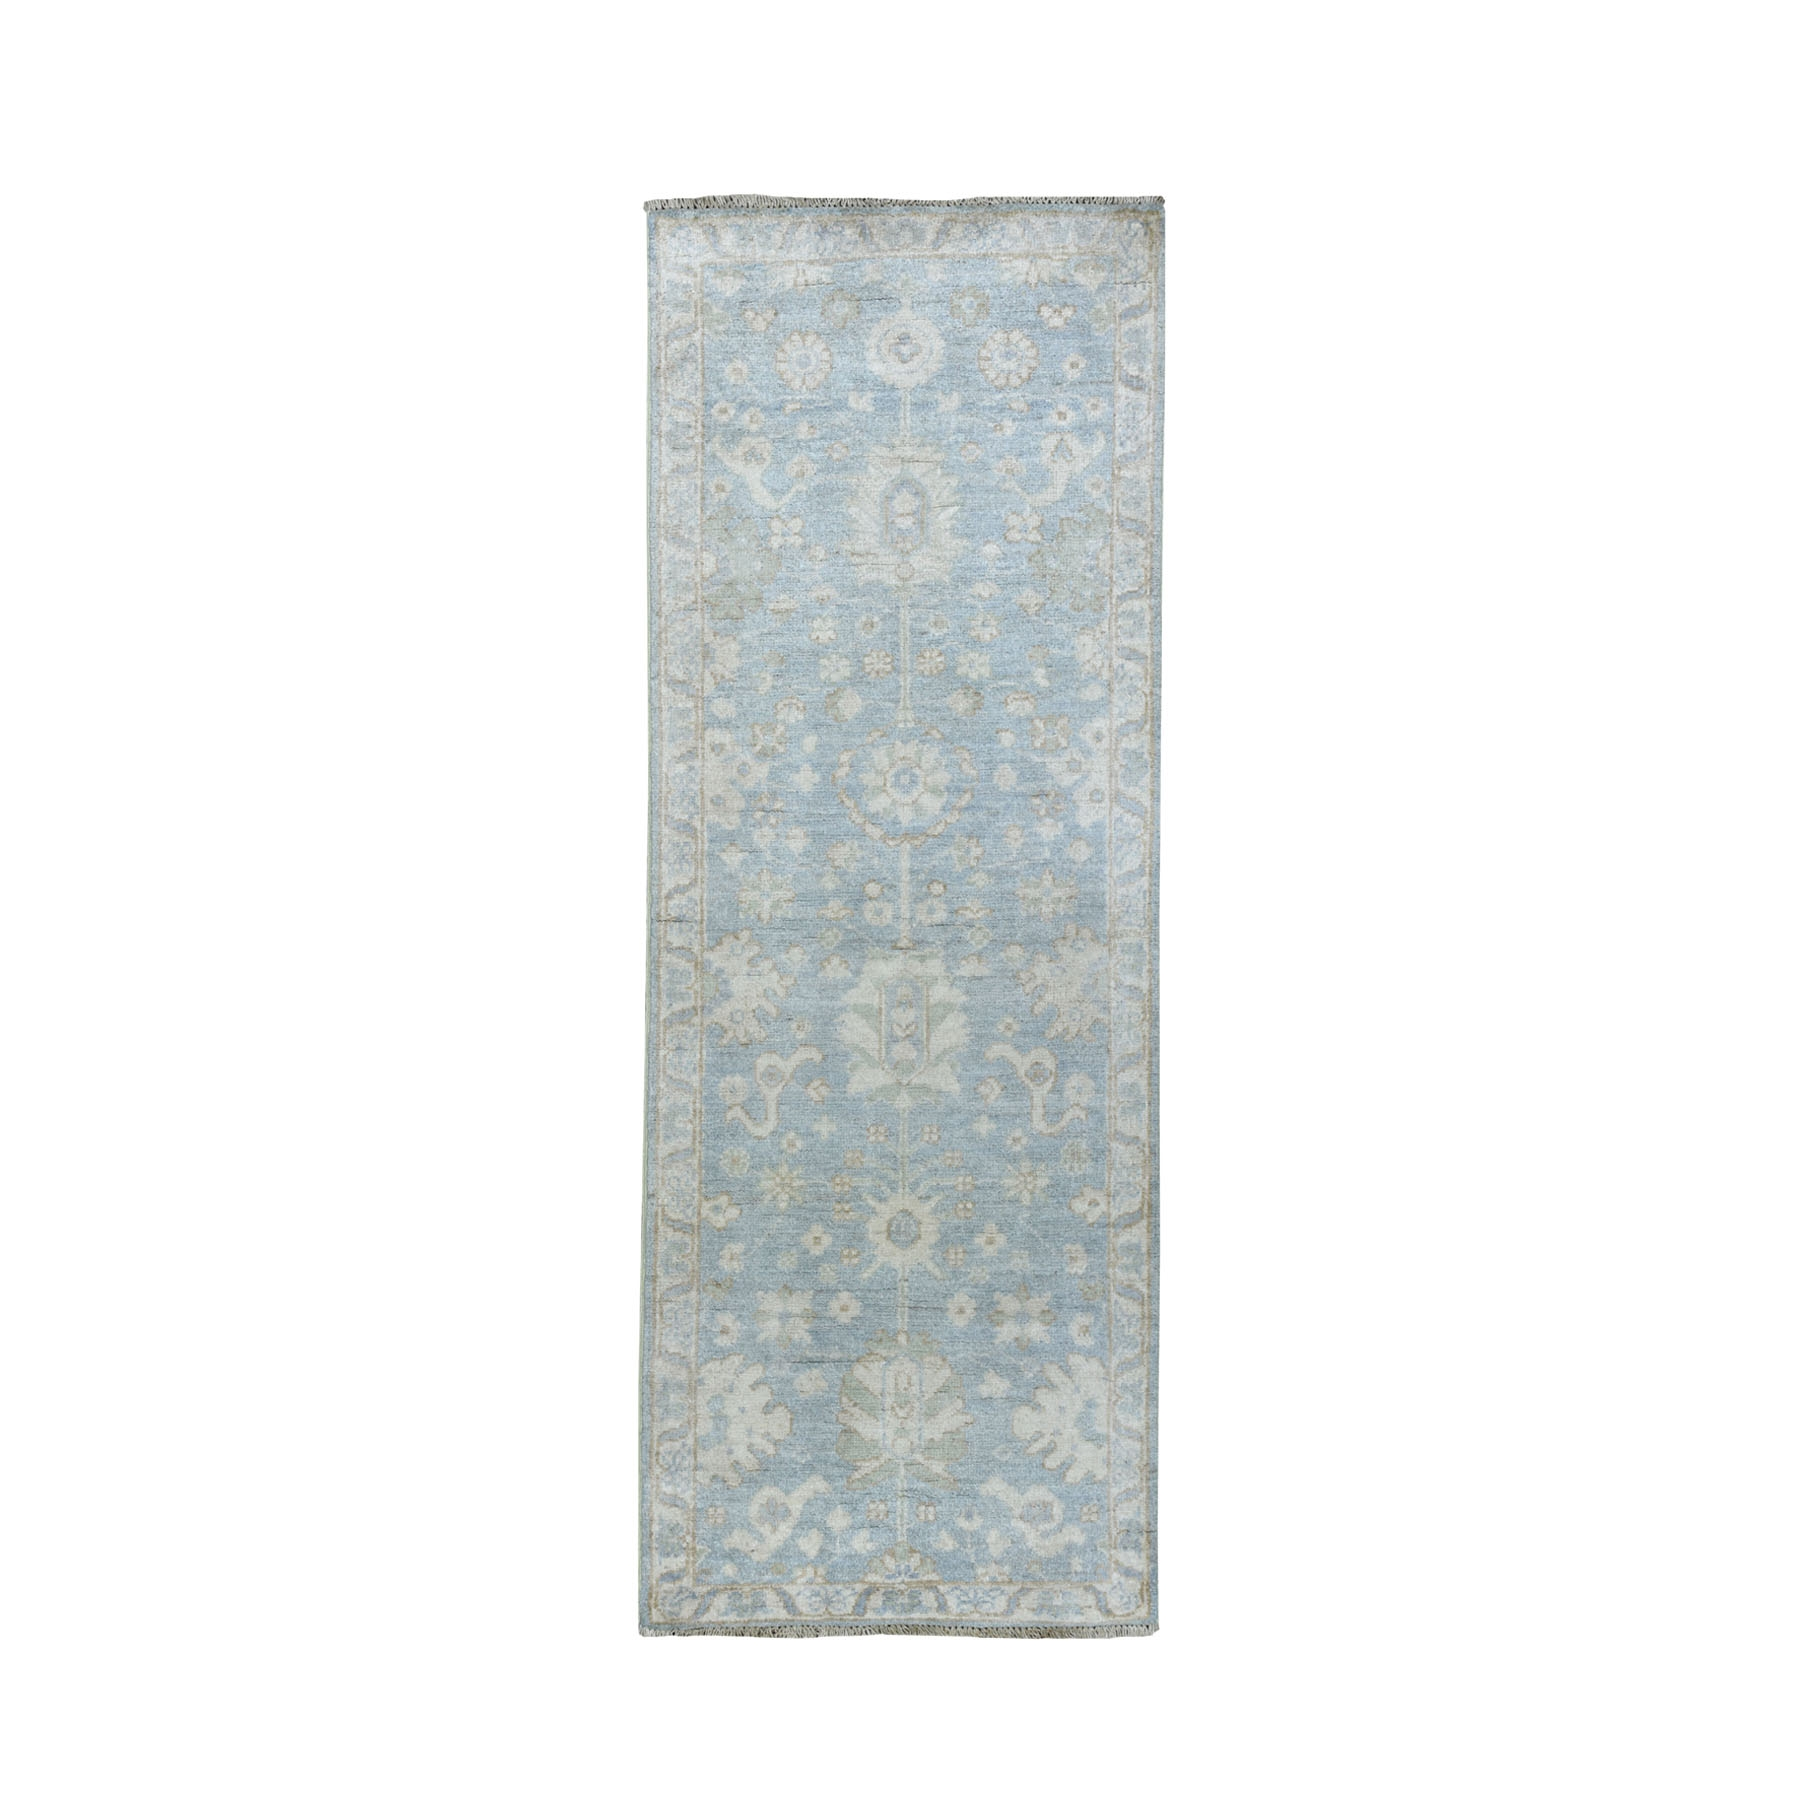 "2'X5'7"" White Wash Peshawar Pure Wool Hand-Knotted Runner Oriental Rug moaead6b"